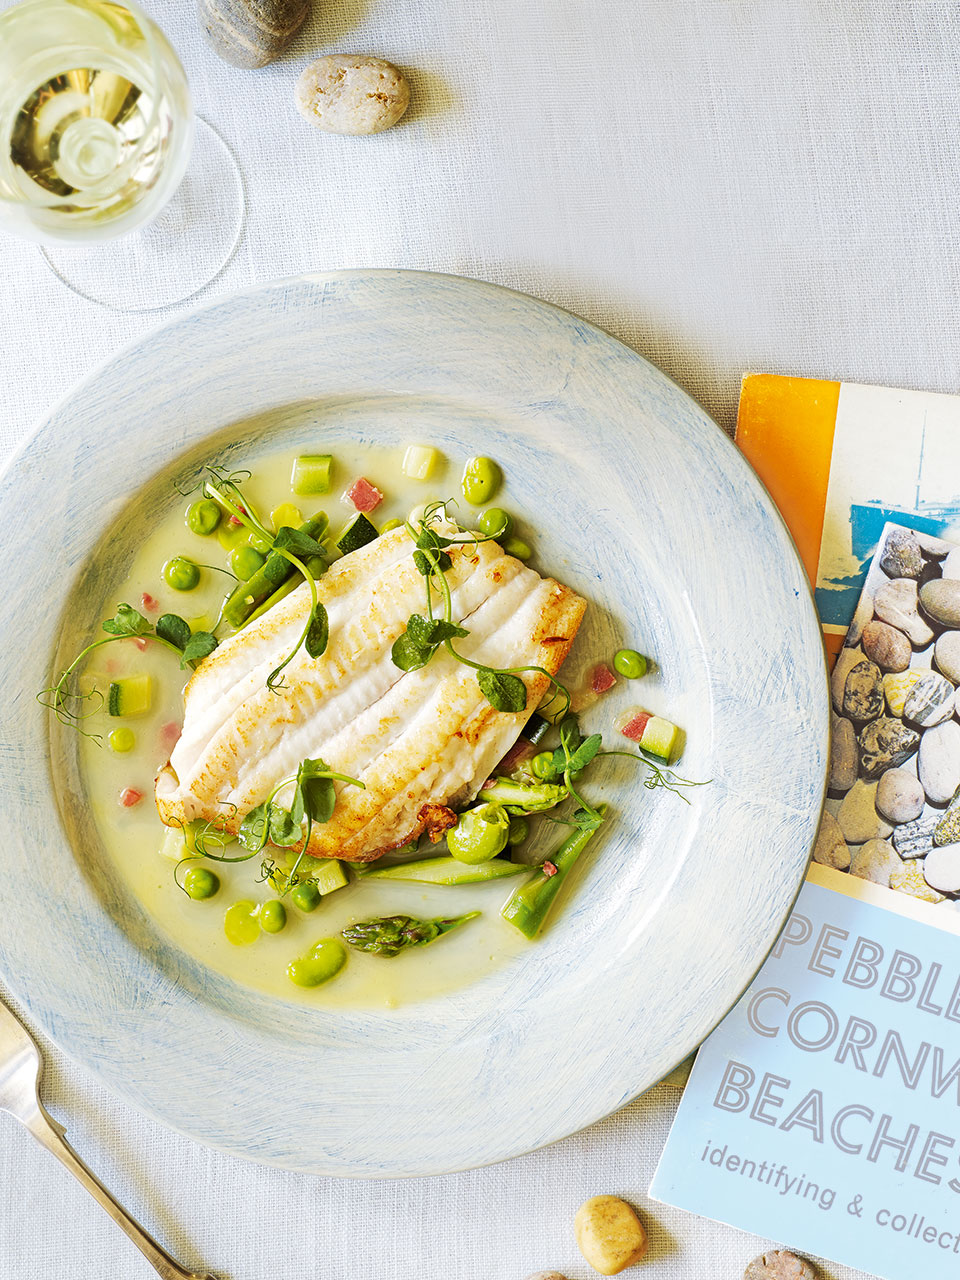 Lemon sole with spring vegetables